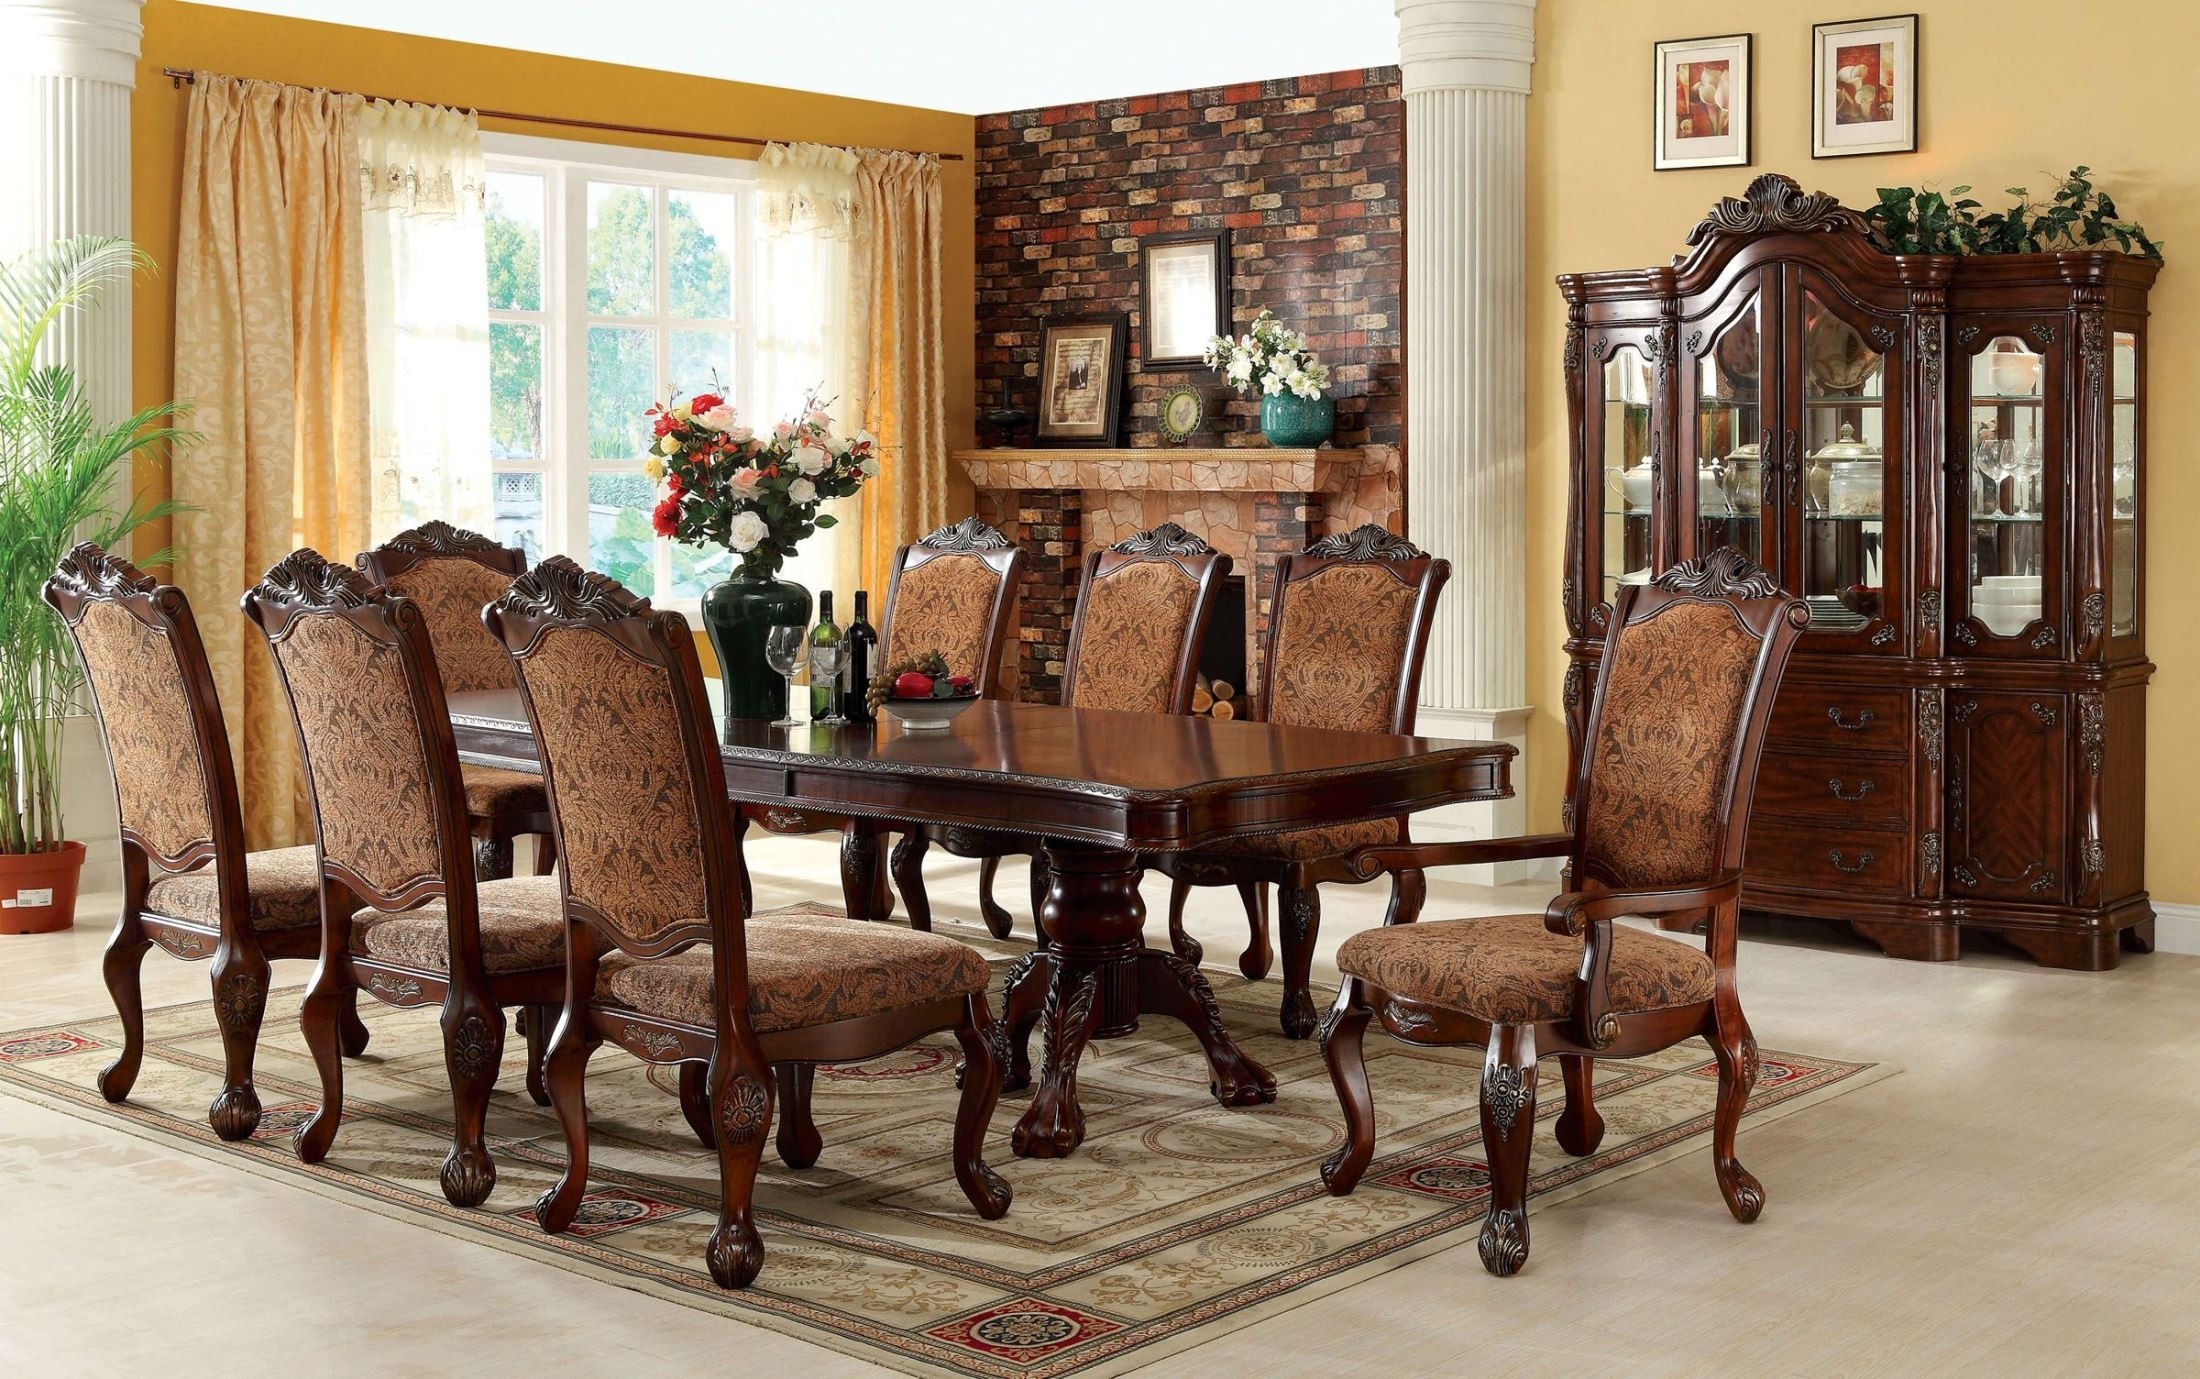 Cromwell antique cherry formal dining room set cm3103t table furniture of america - Dining room sets ...